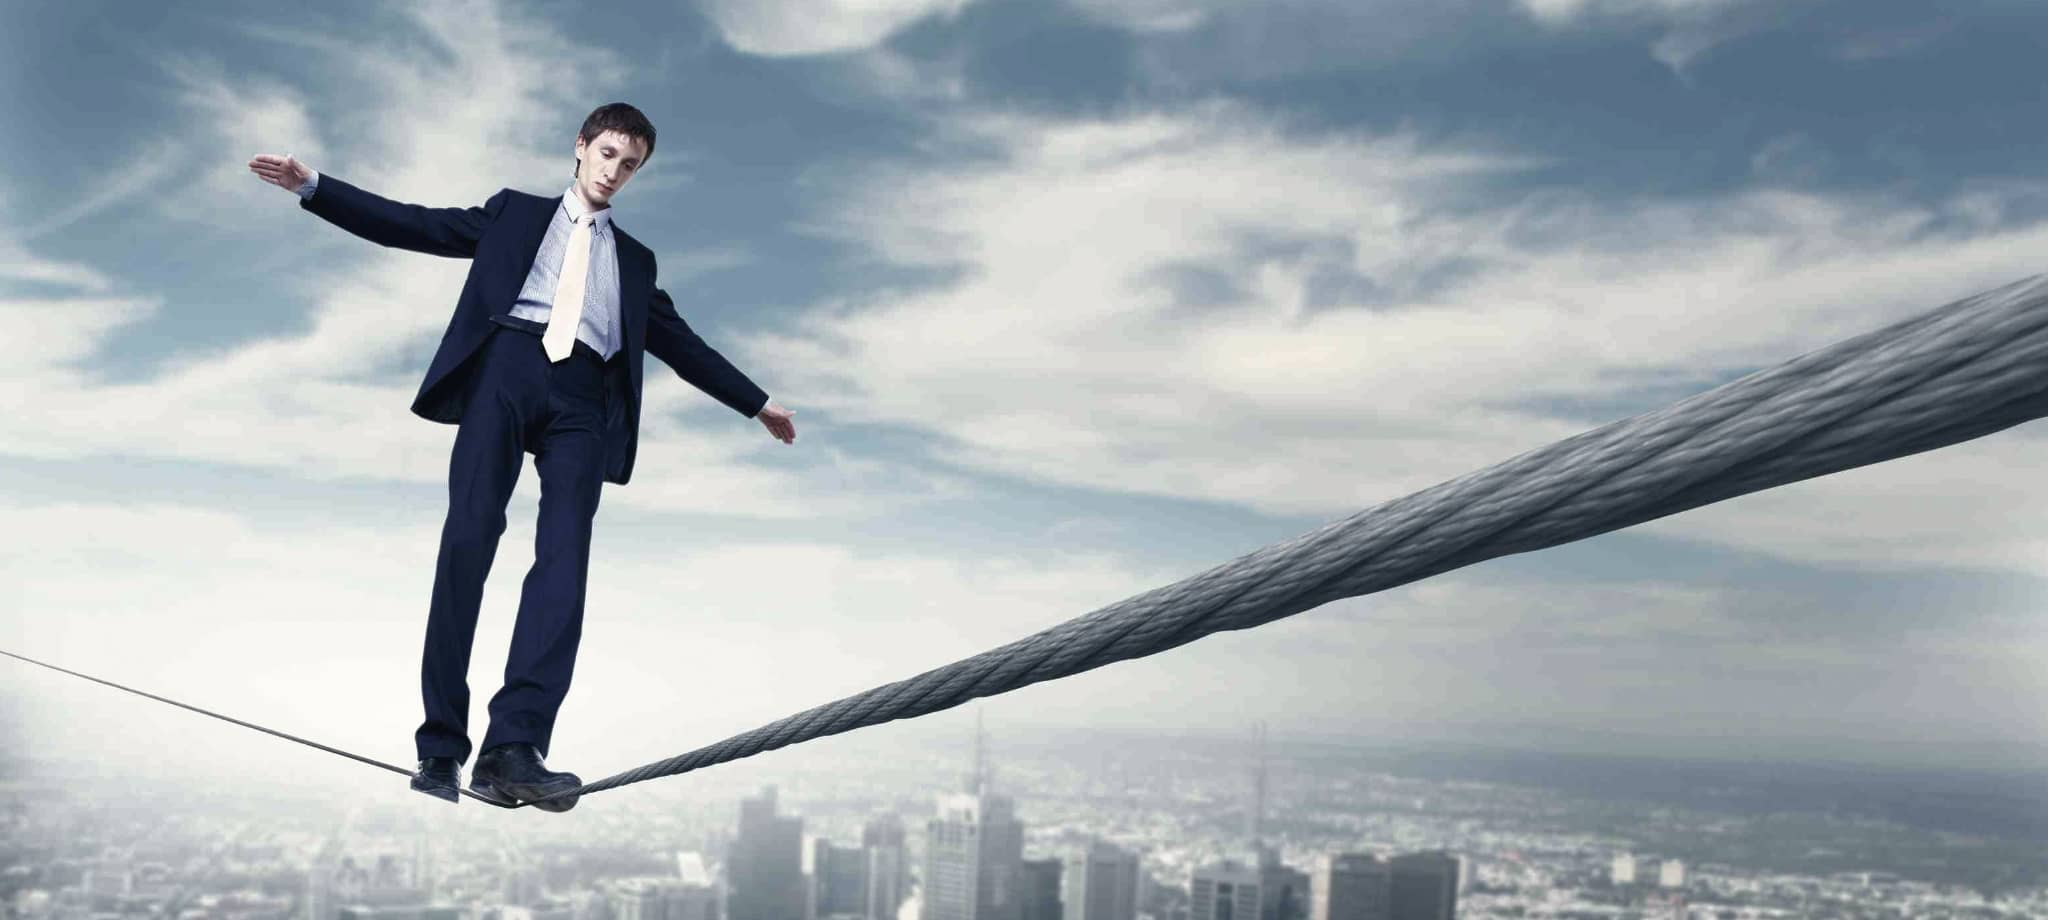 business-confidentiality-tight-rope